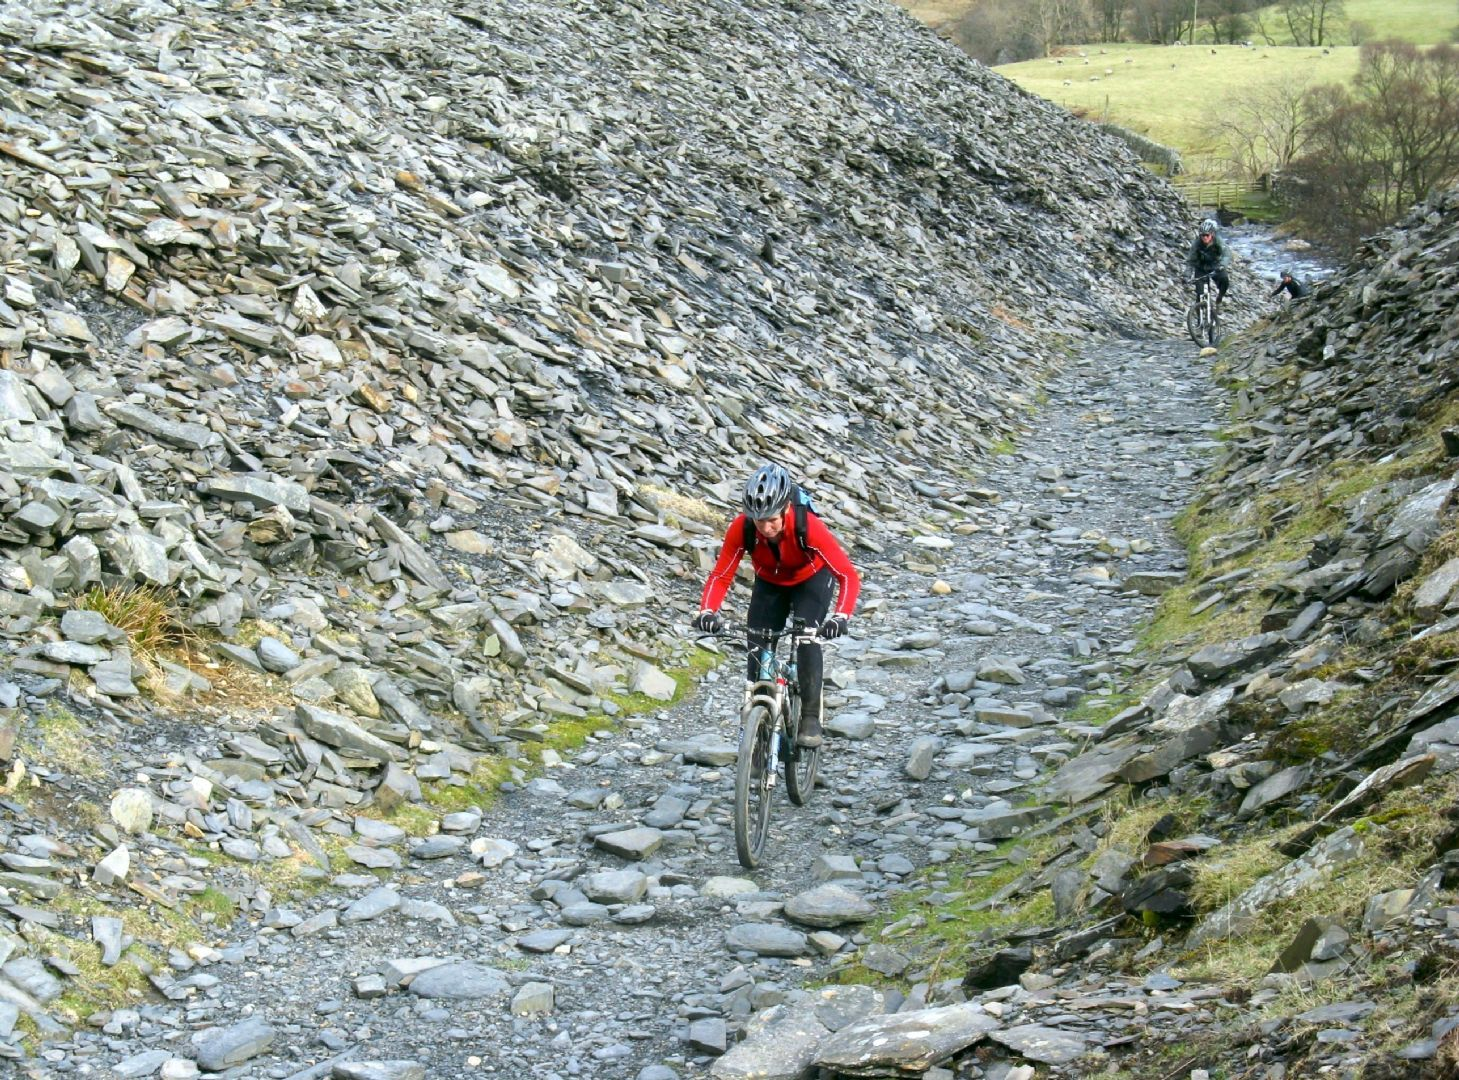 UK - Lake District - Awesome Ambleside - Guided Mountain Biking Holiday - Mountain Biking